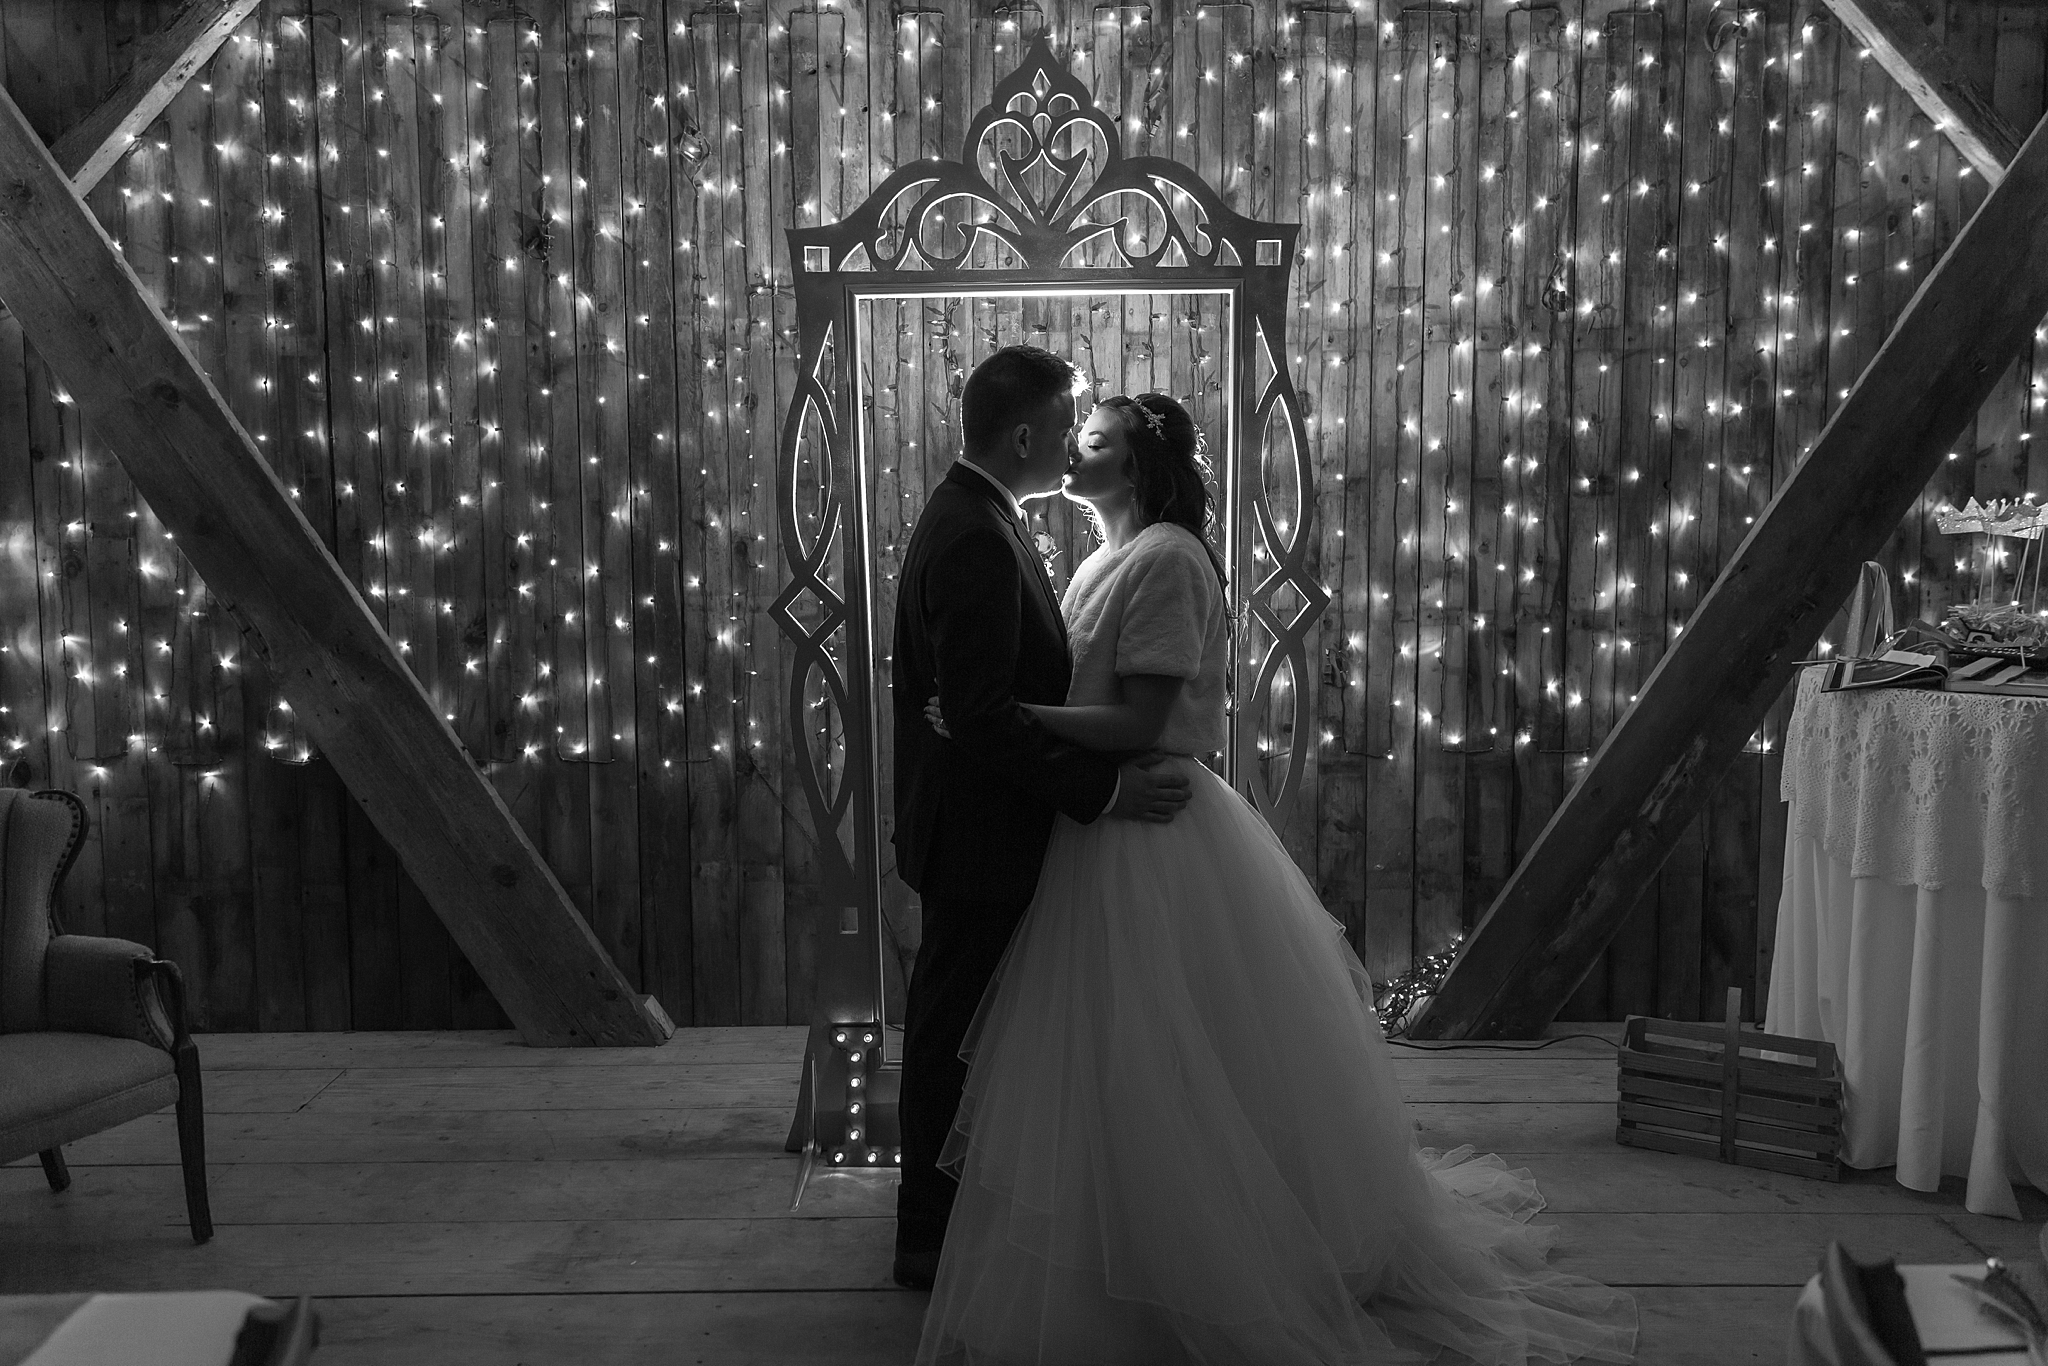 rustic-whimsical-wedding-photos-the-vale-royal-barn-in-fenton-michigan-by-courtney-carolyn-photography_0107.jpg